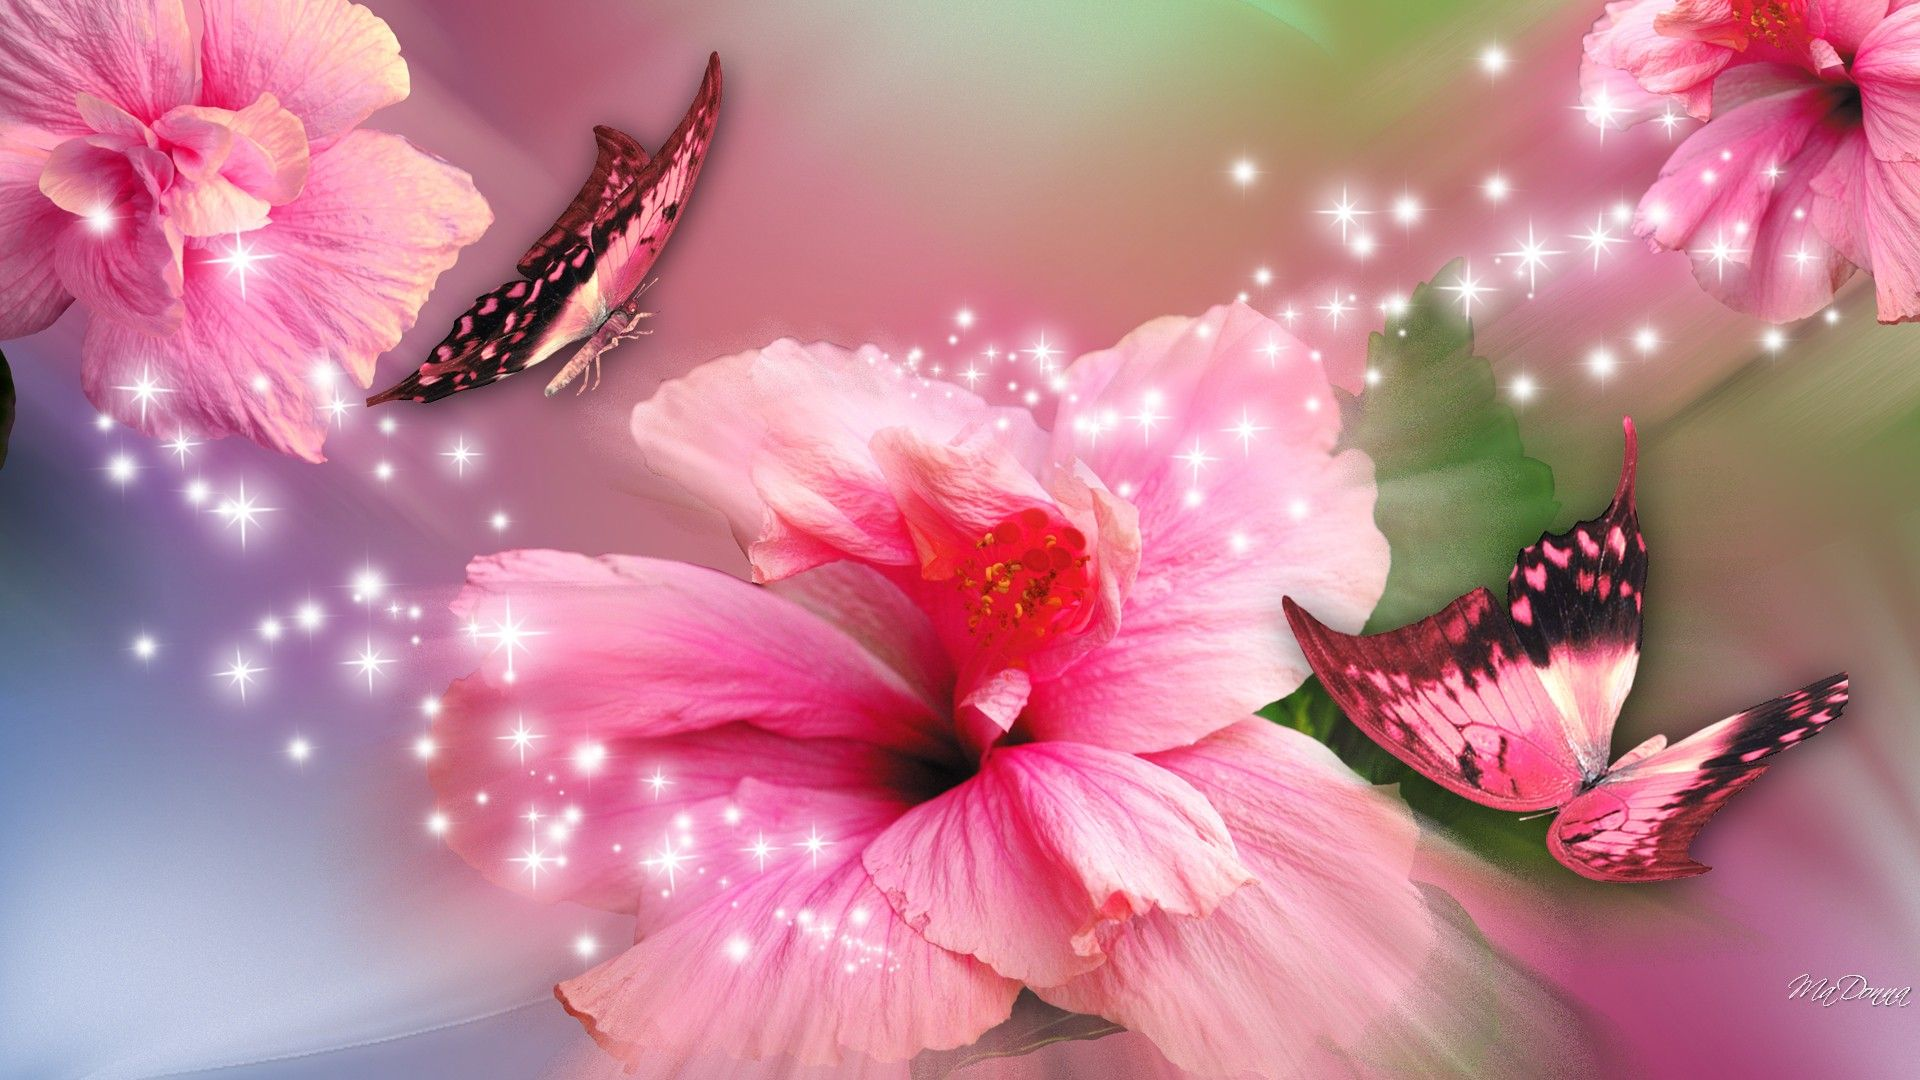 Flowers and Butterflies Pink | Flowers, Pink flowers